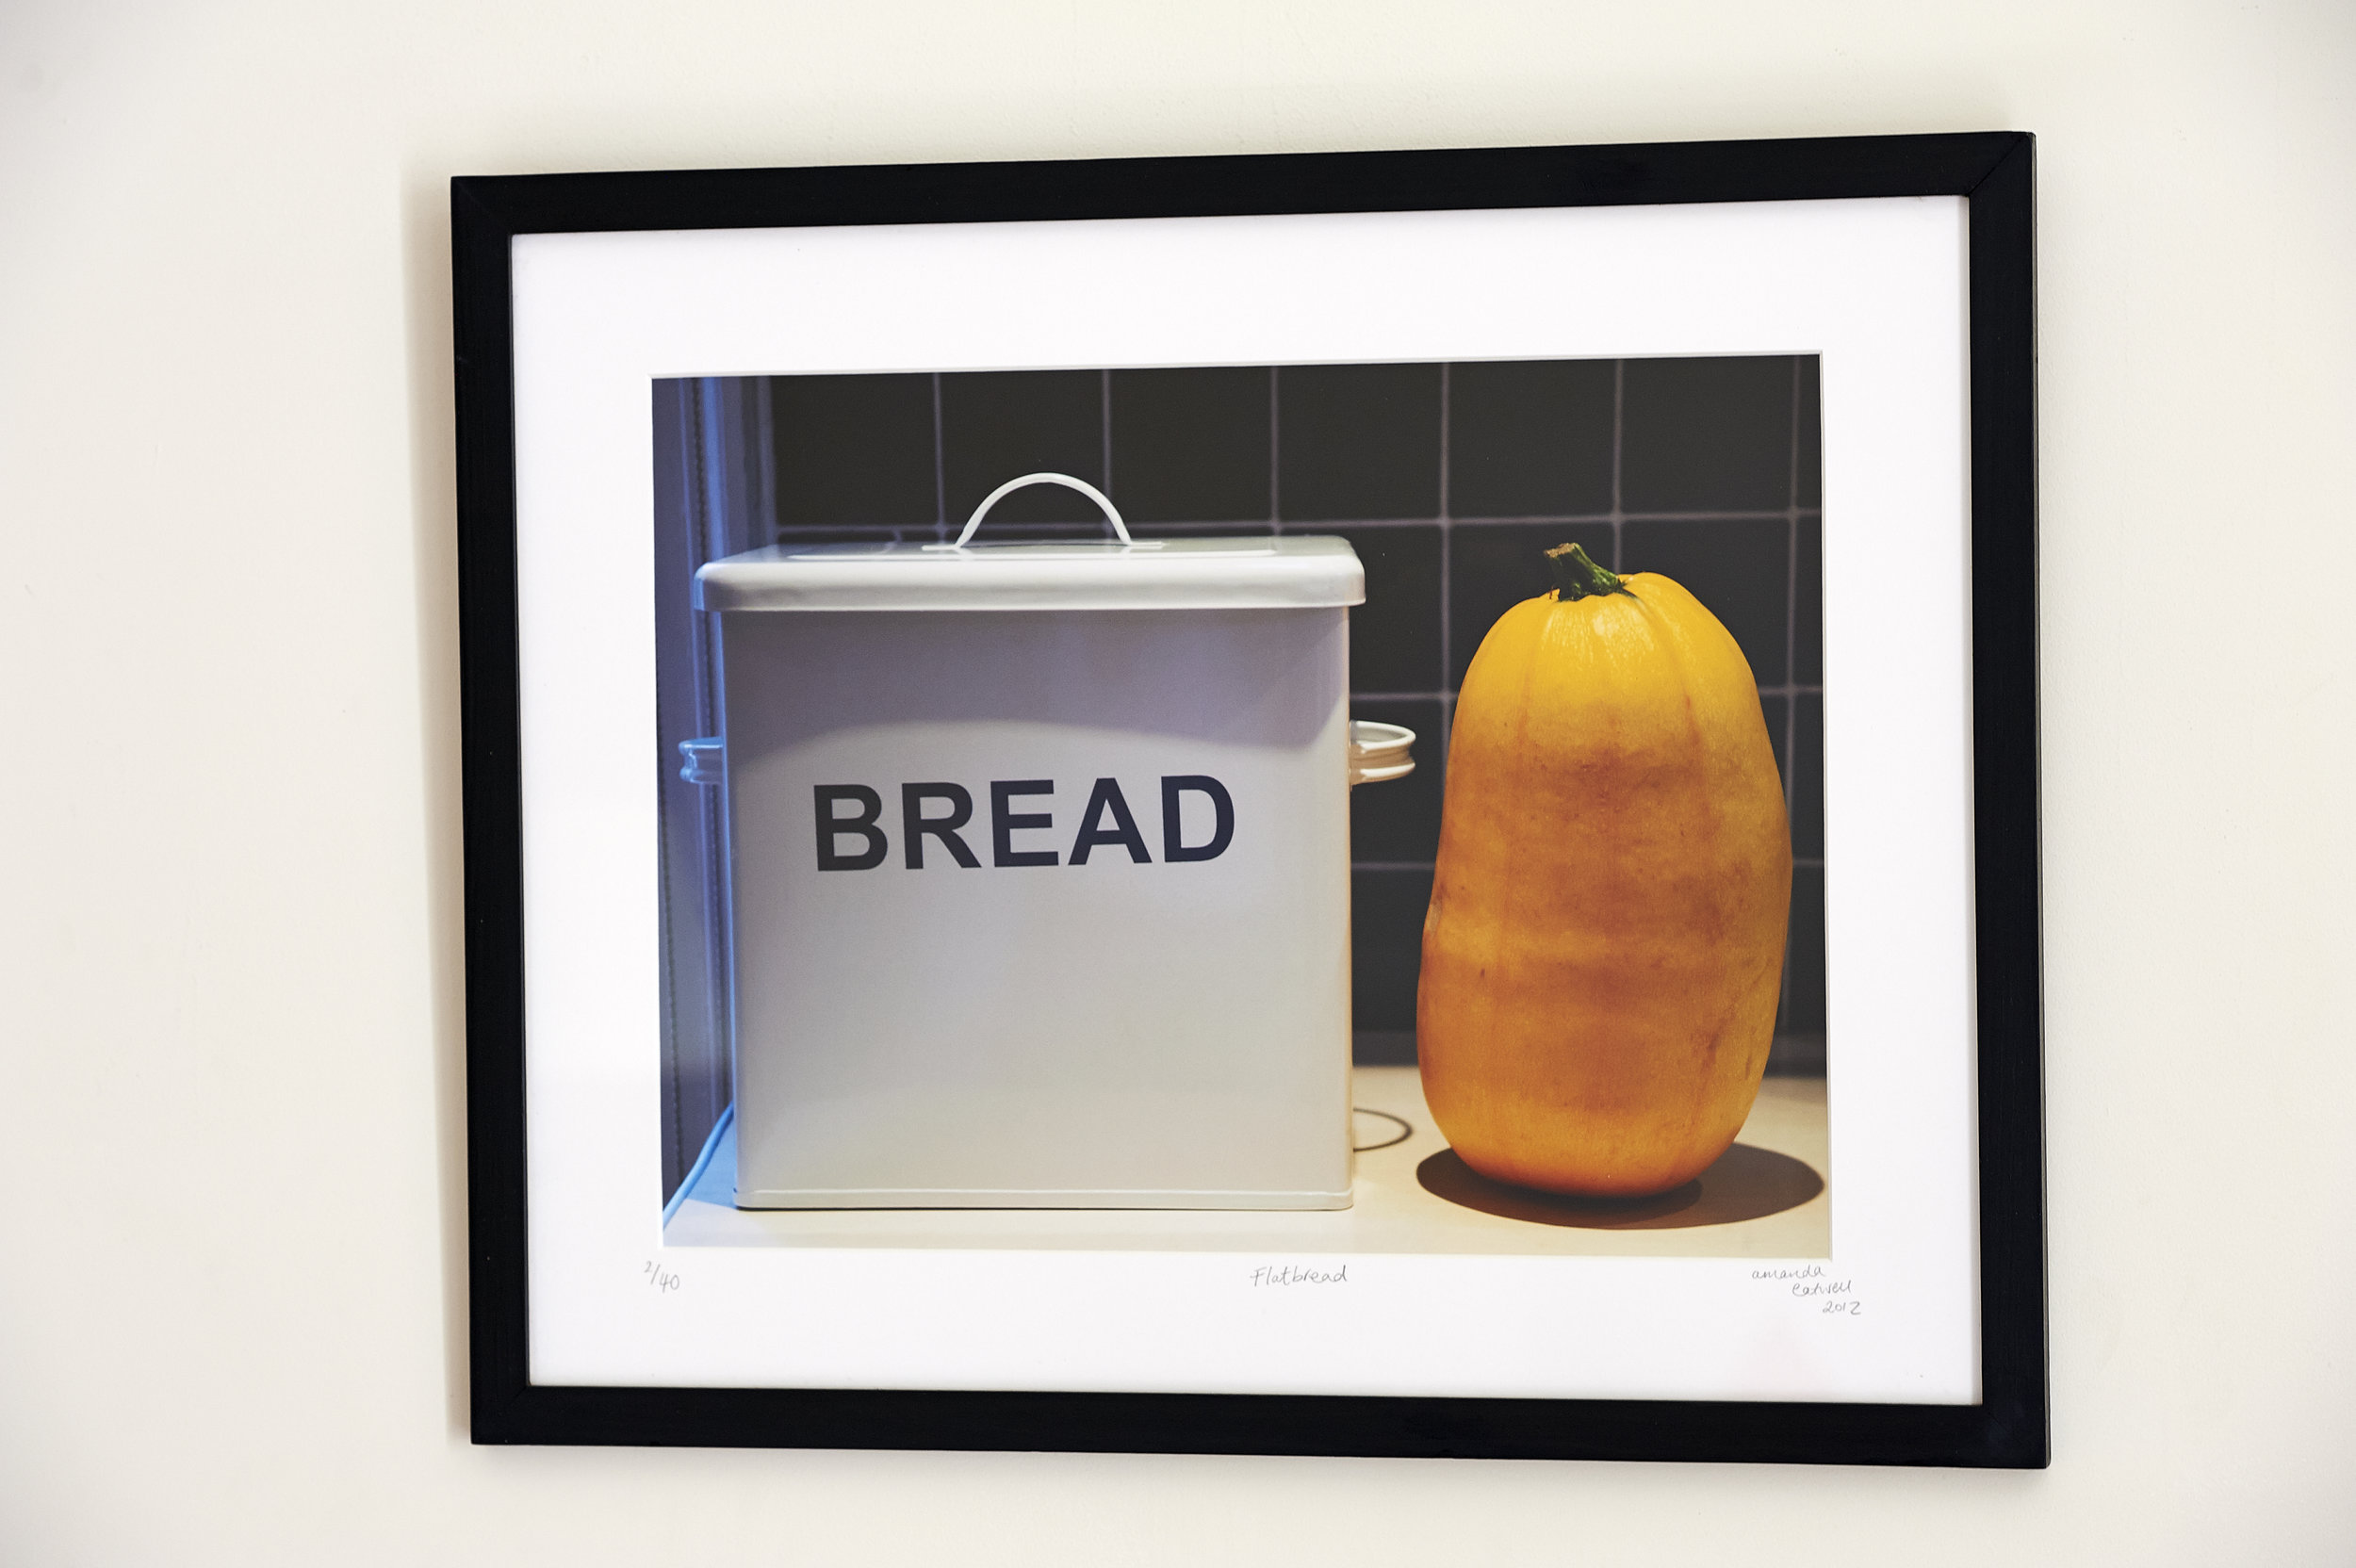 """Flatbread **SOLD**  This is a popular image. I love it!  Framed in a Farrow & Ball 'Offblack' painted frame. Slick.  Digital Image printed on lustre photographic Paper.   Frame Size approx. 21 x 17""""    COST £45.00  **SOLD**"""